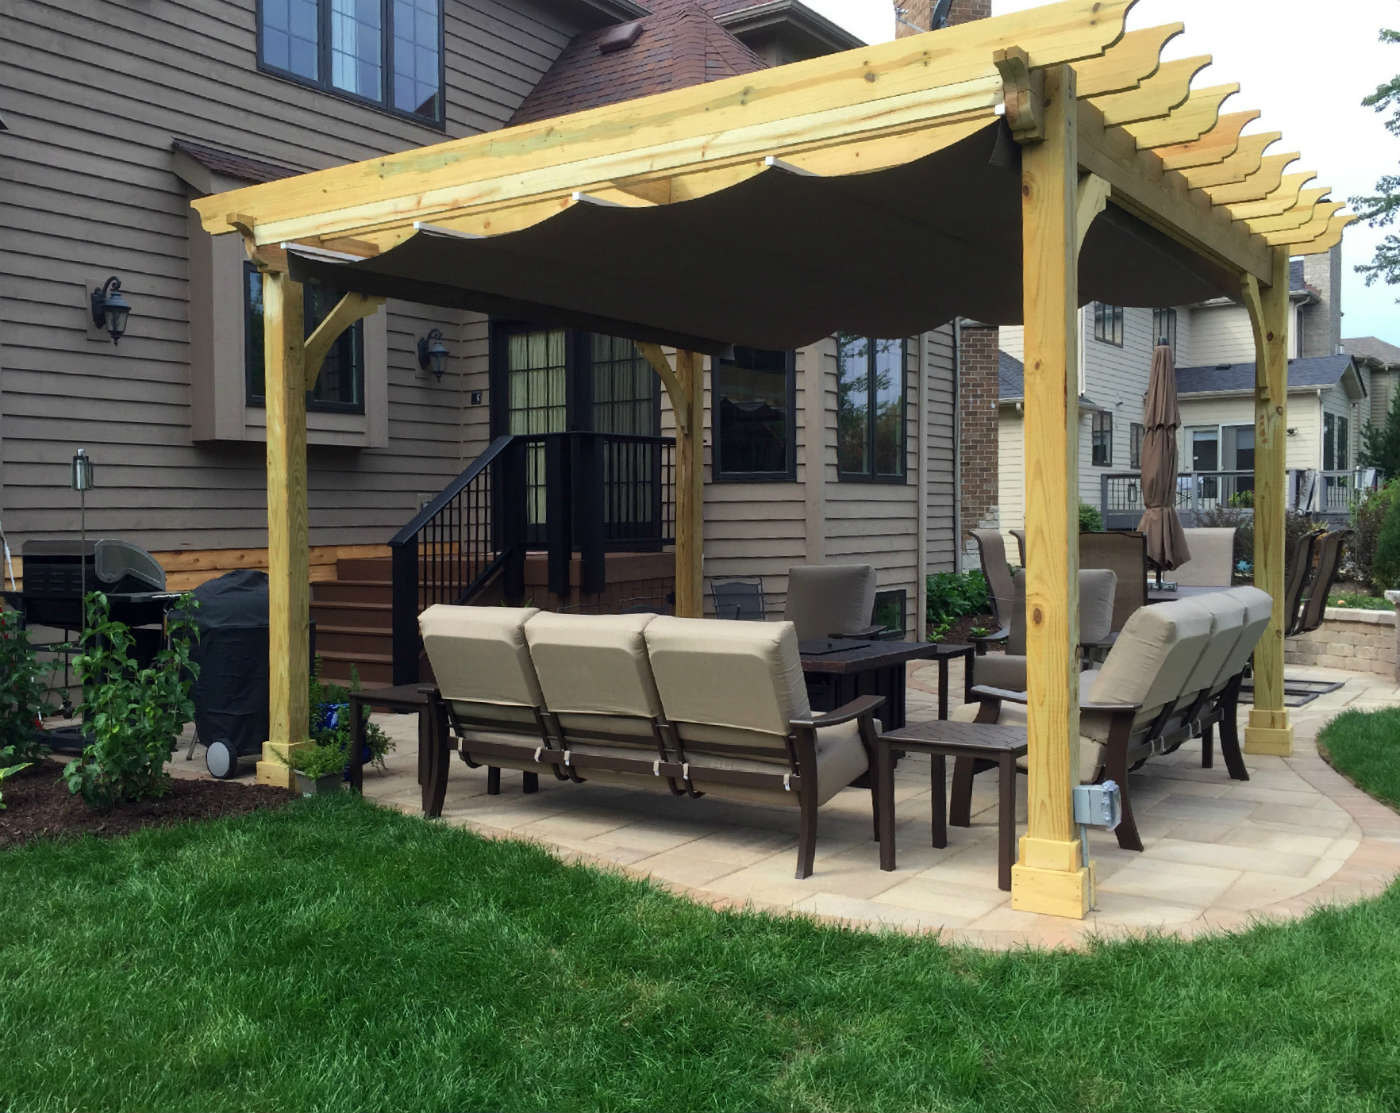 High Quality Belgard Patio And Pergola In Naperville IL